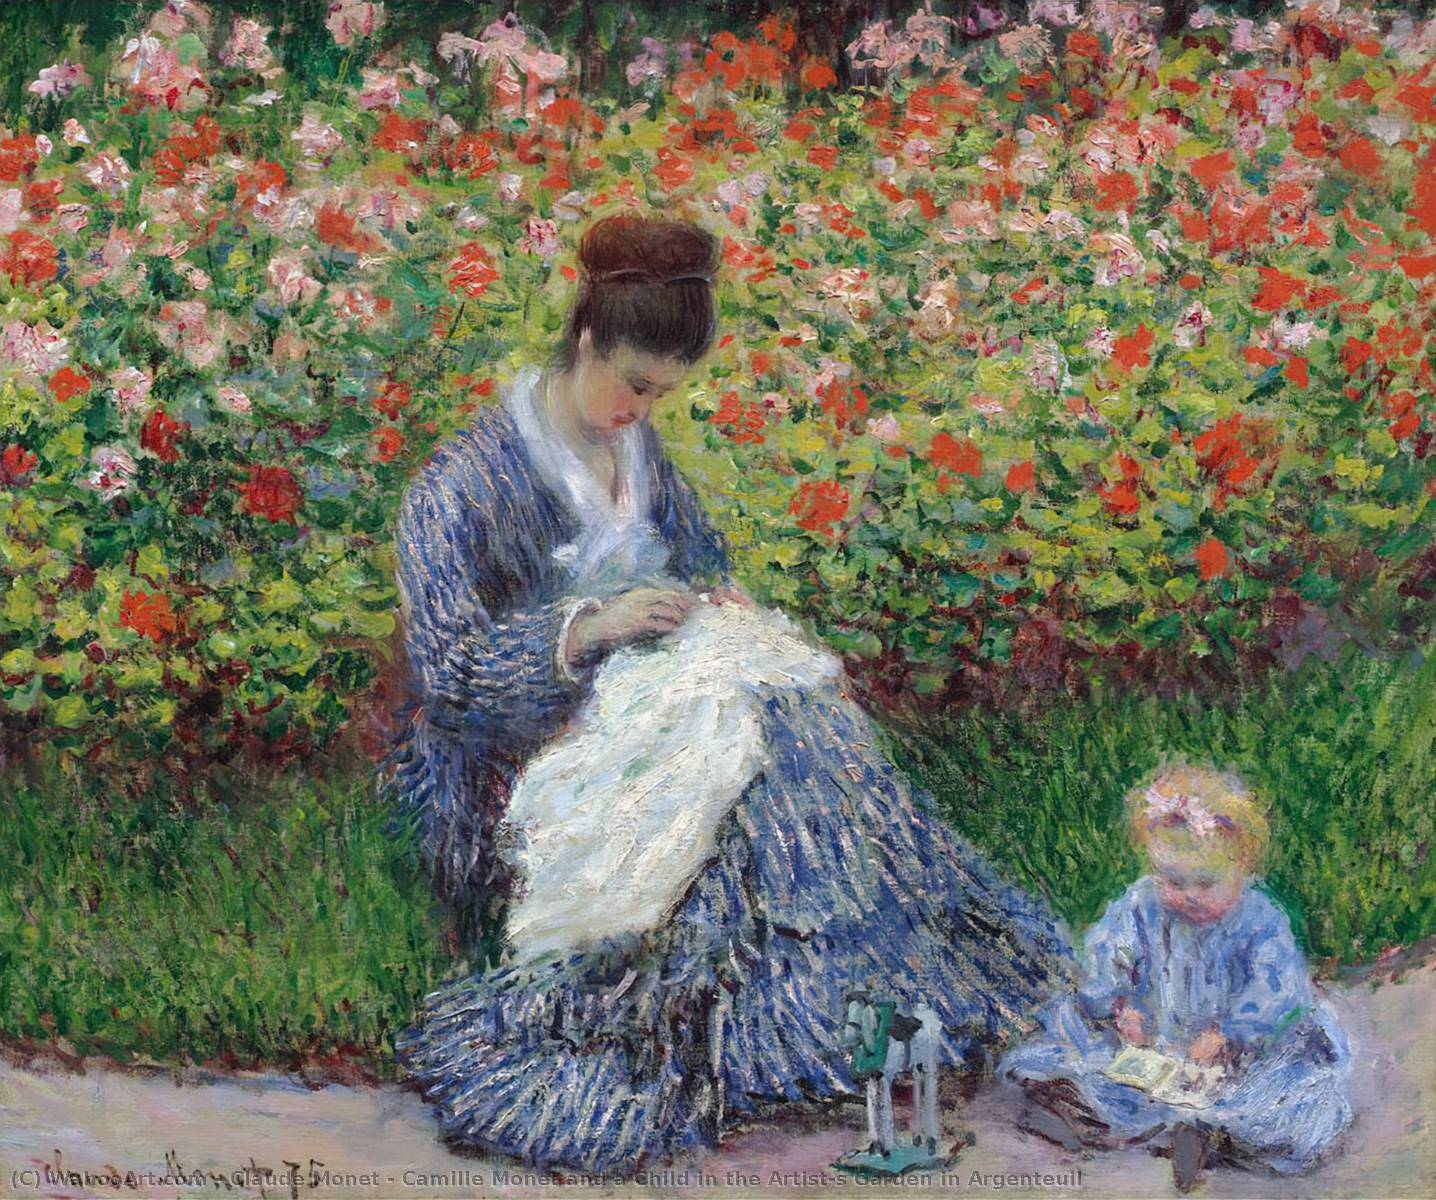 famous painting Camille Monet and a Child in the Artist's Garden in Argenteuil of Claude Monet